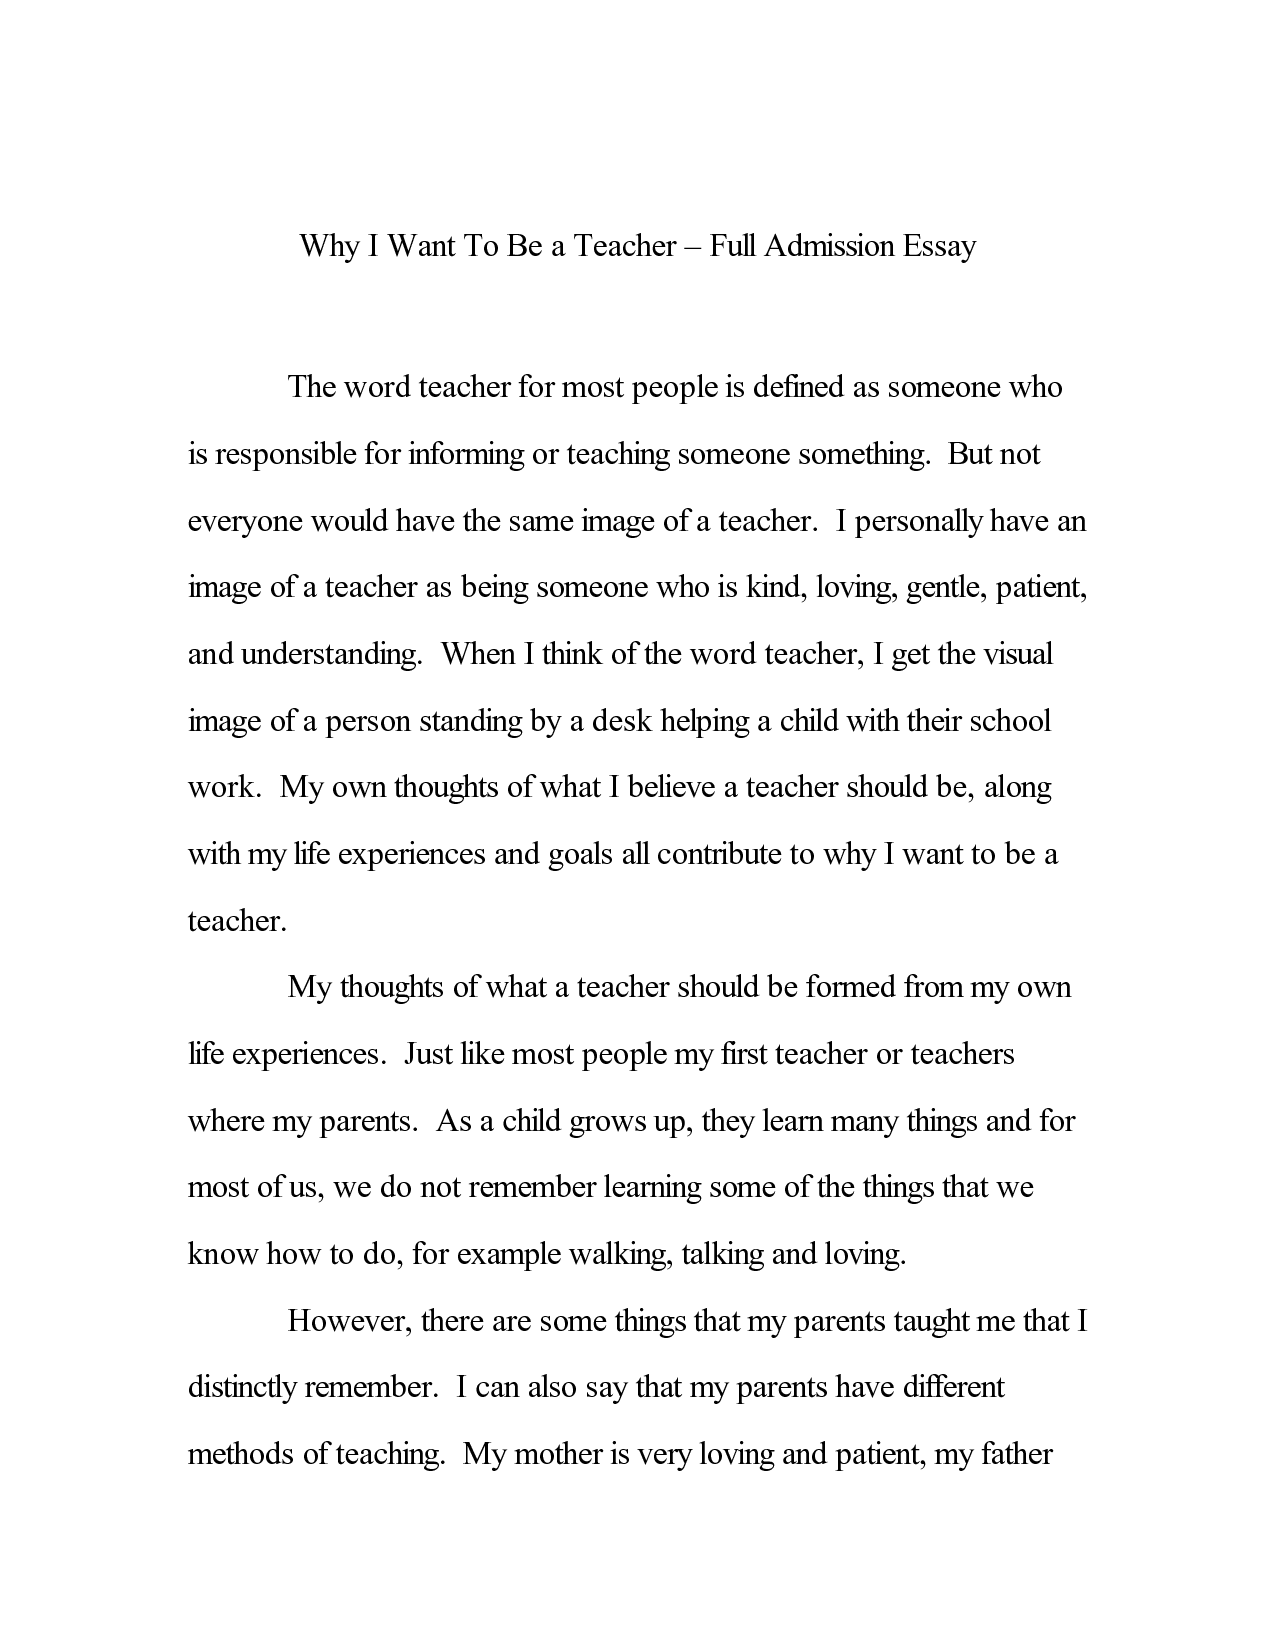 003 Why This College Essay Sample Example Fearsome Us Samples Major Our Full